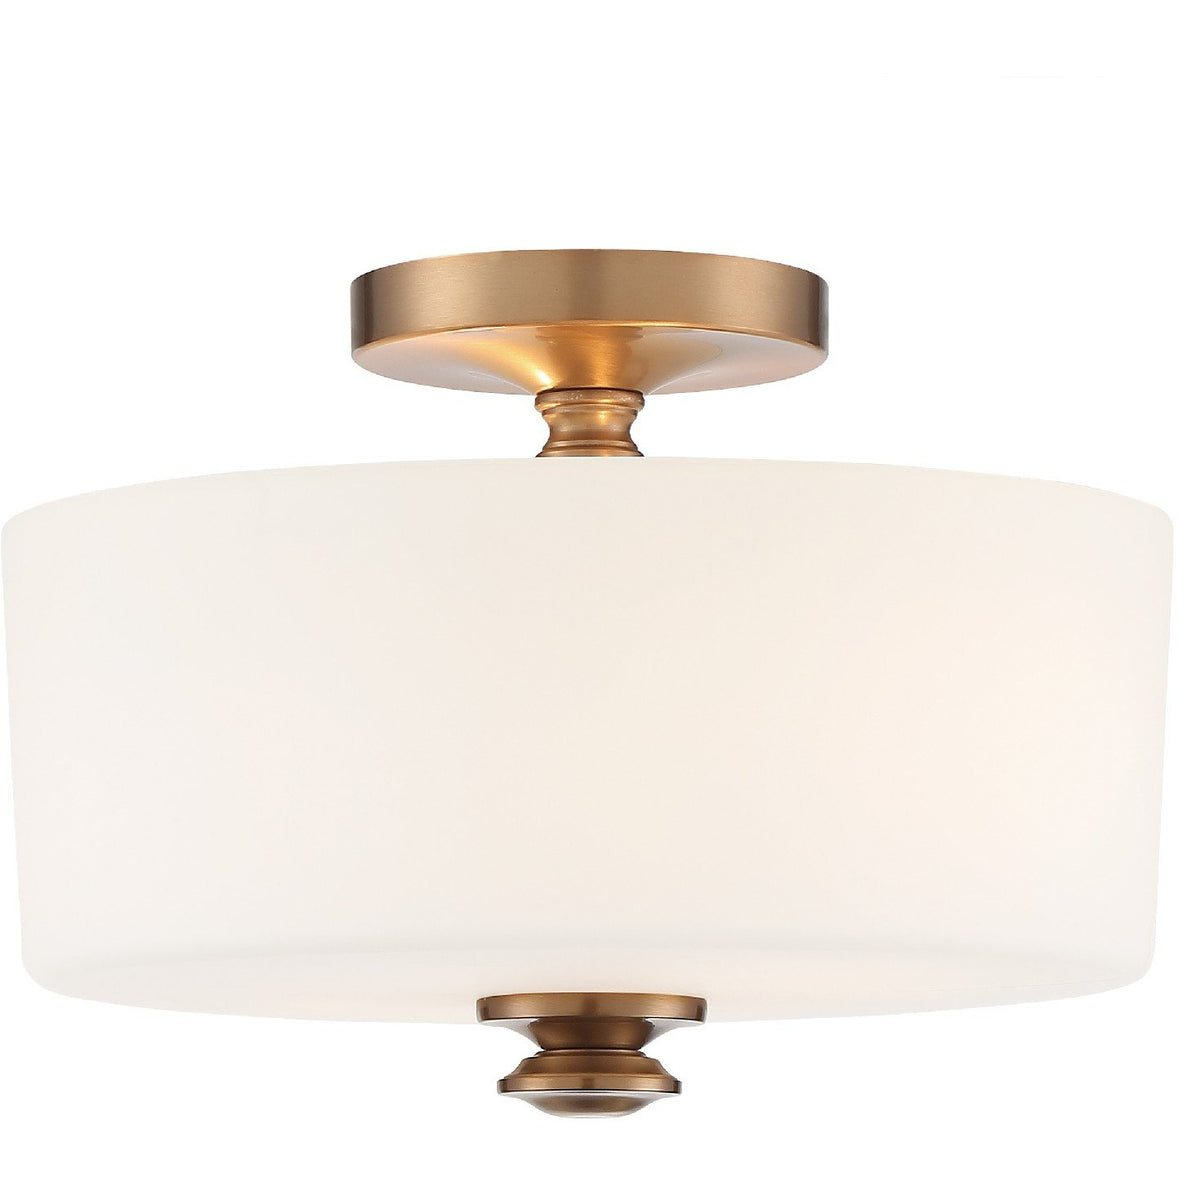 Crystorama - TRA-A3302-VG - Two Light Ceiling Mount - Travis - Vibrant Gold